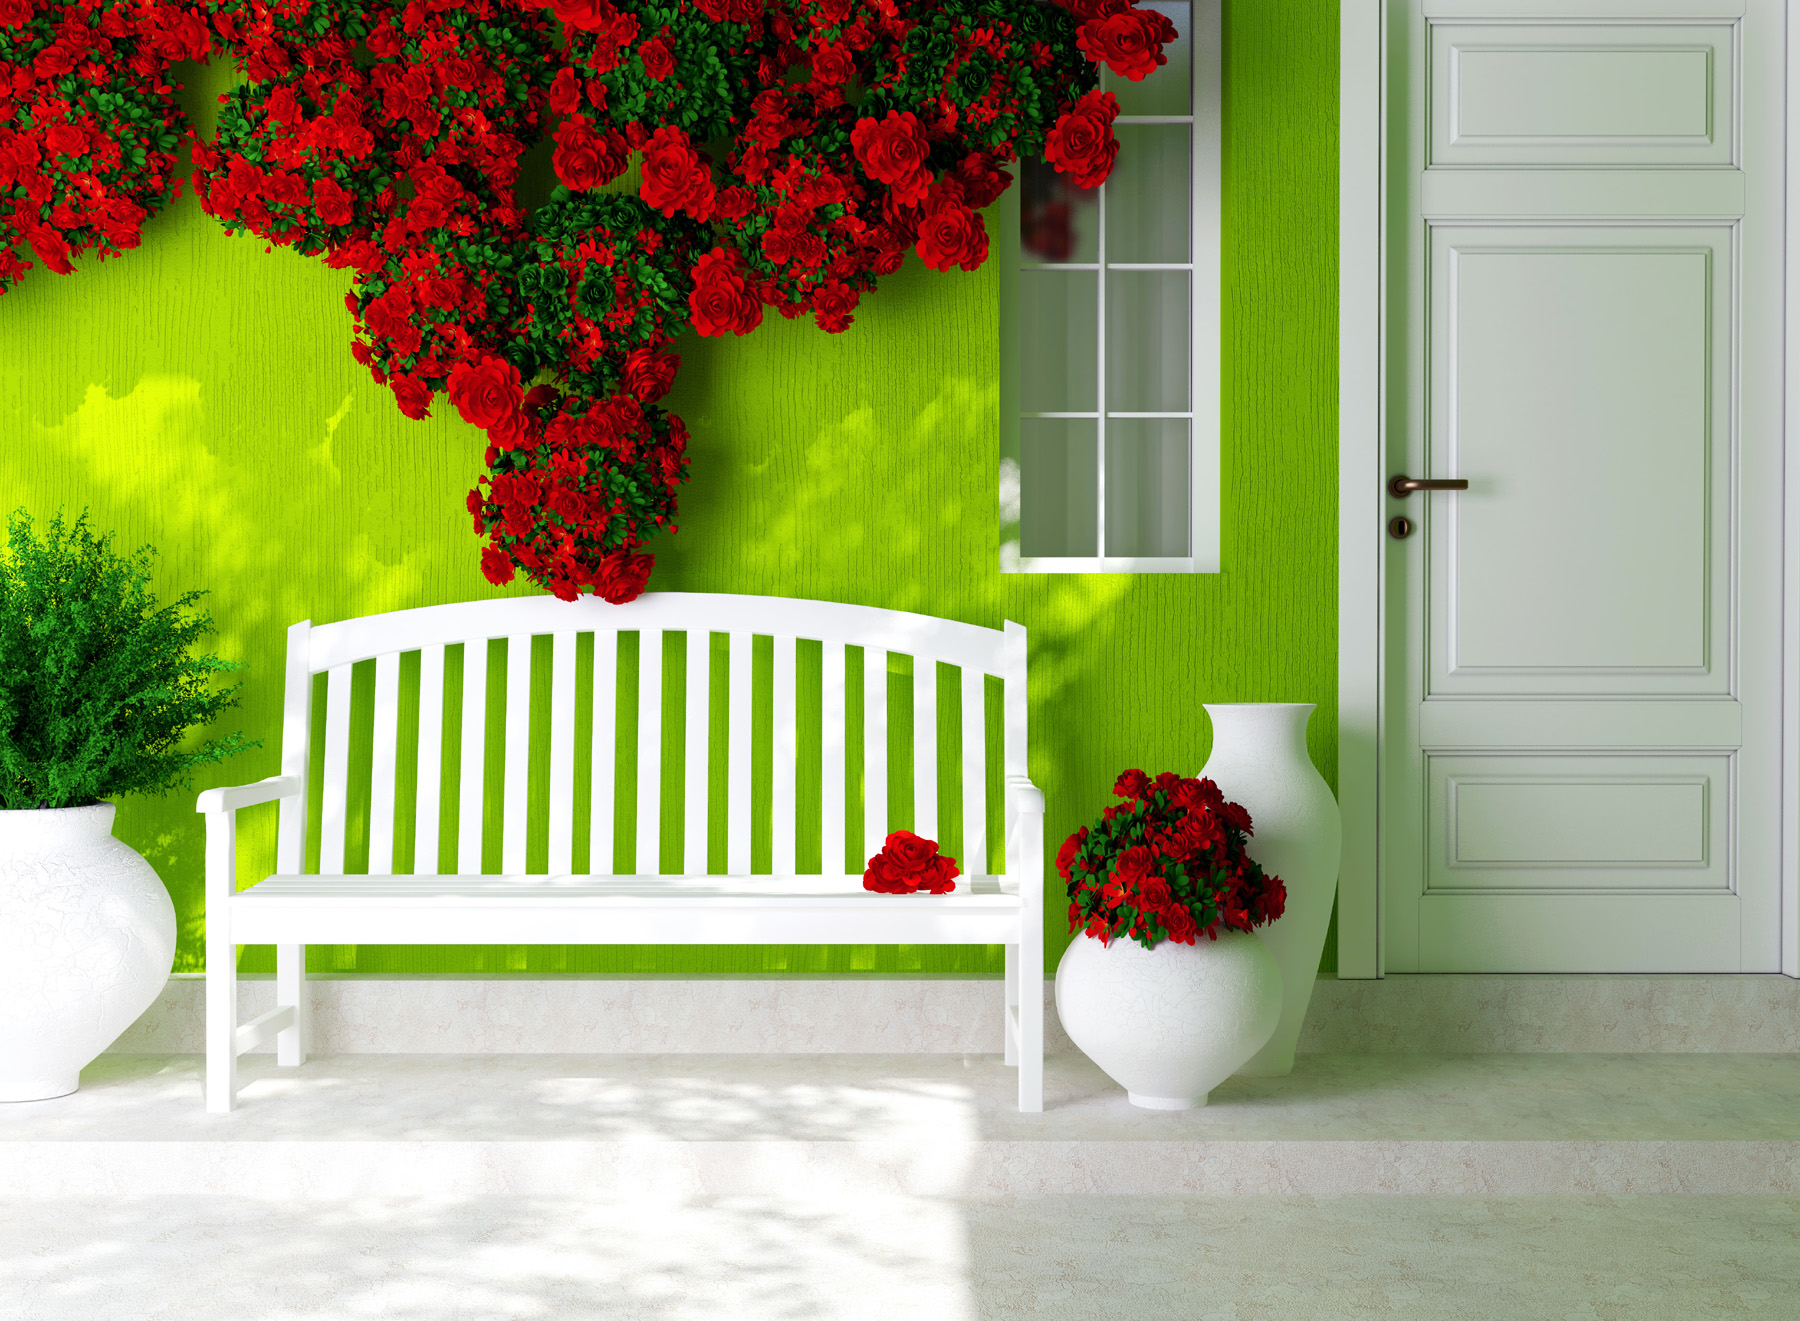 Red flowers on a bench and wall 50951